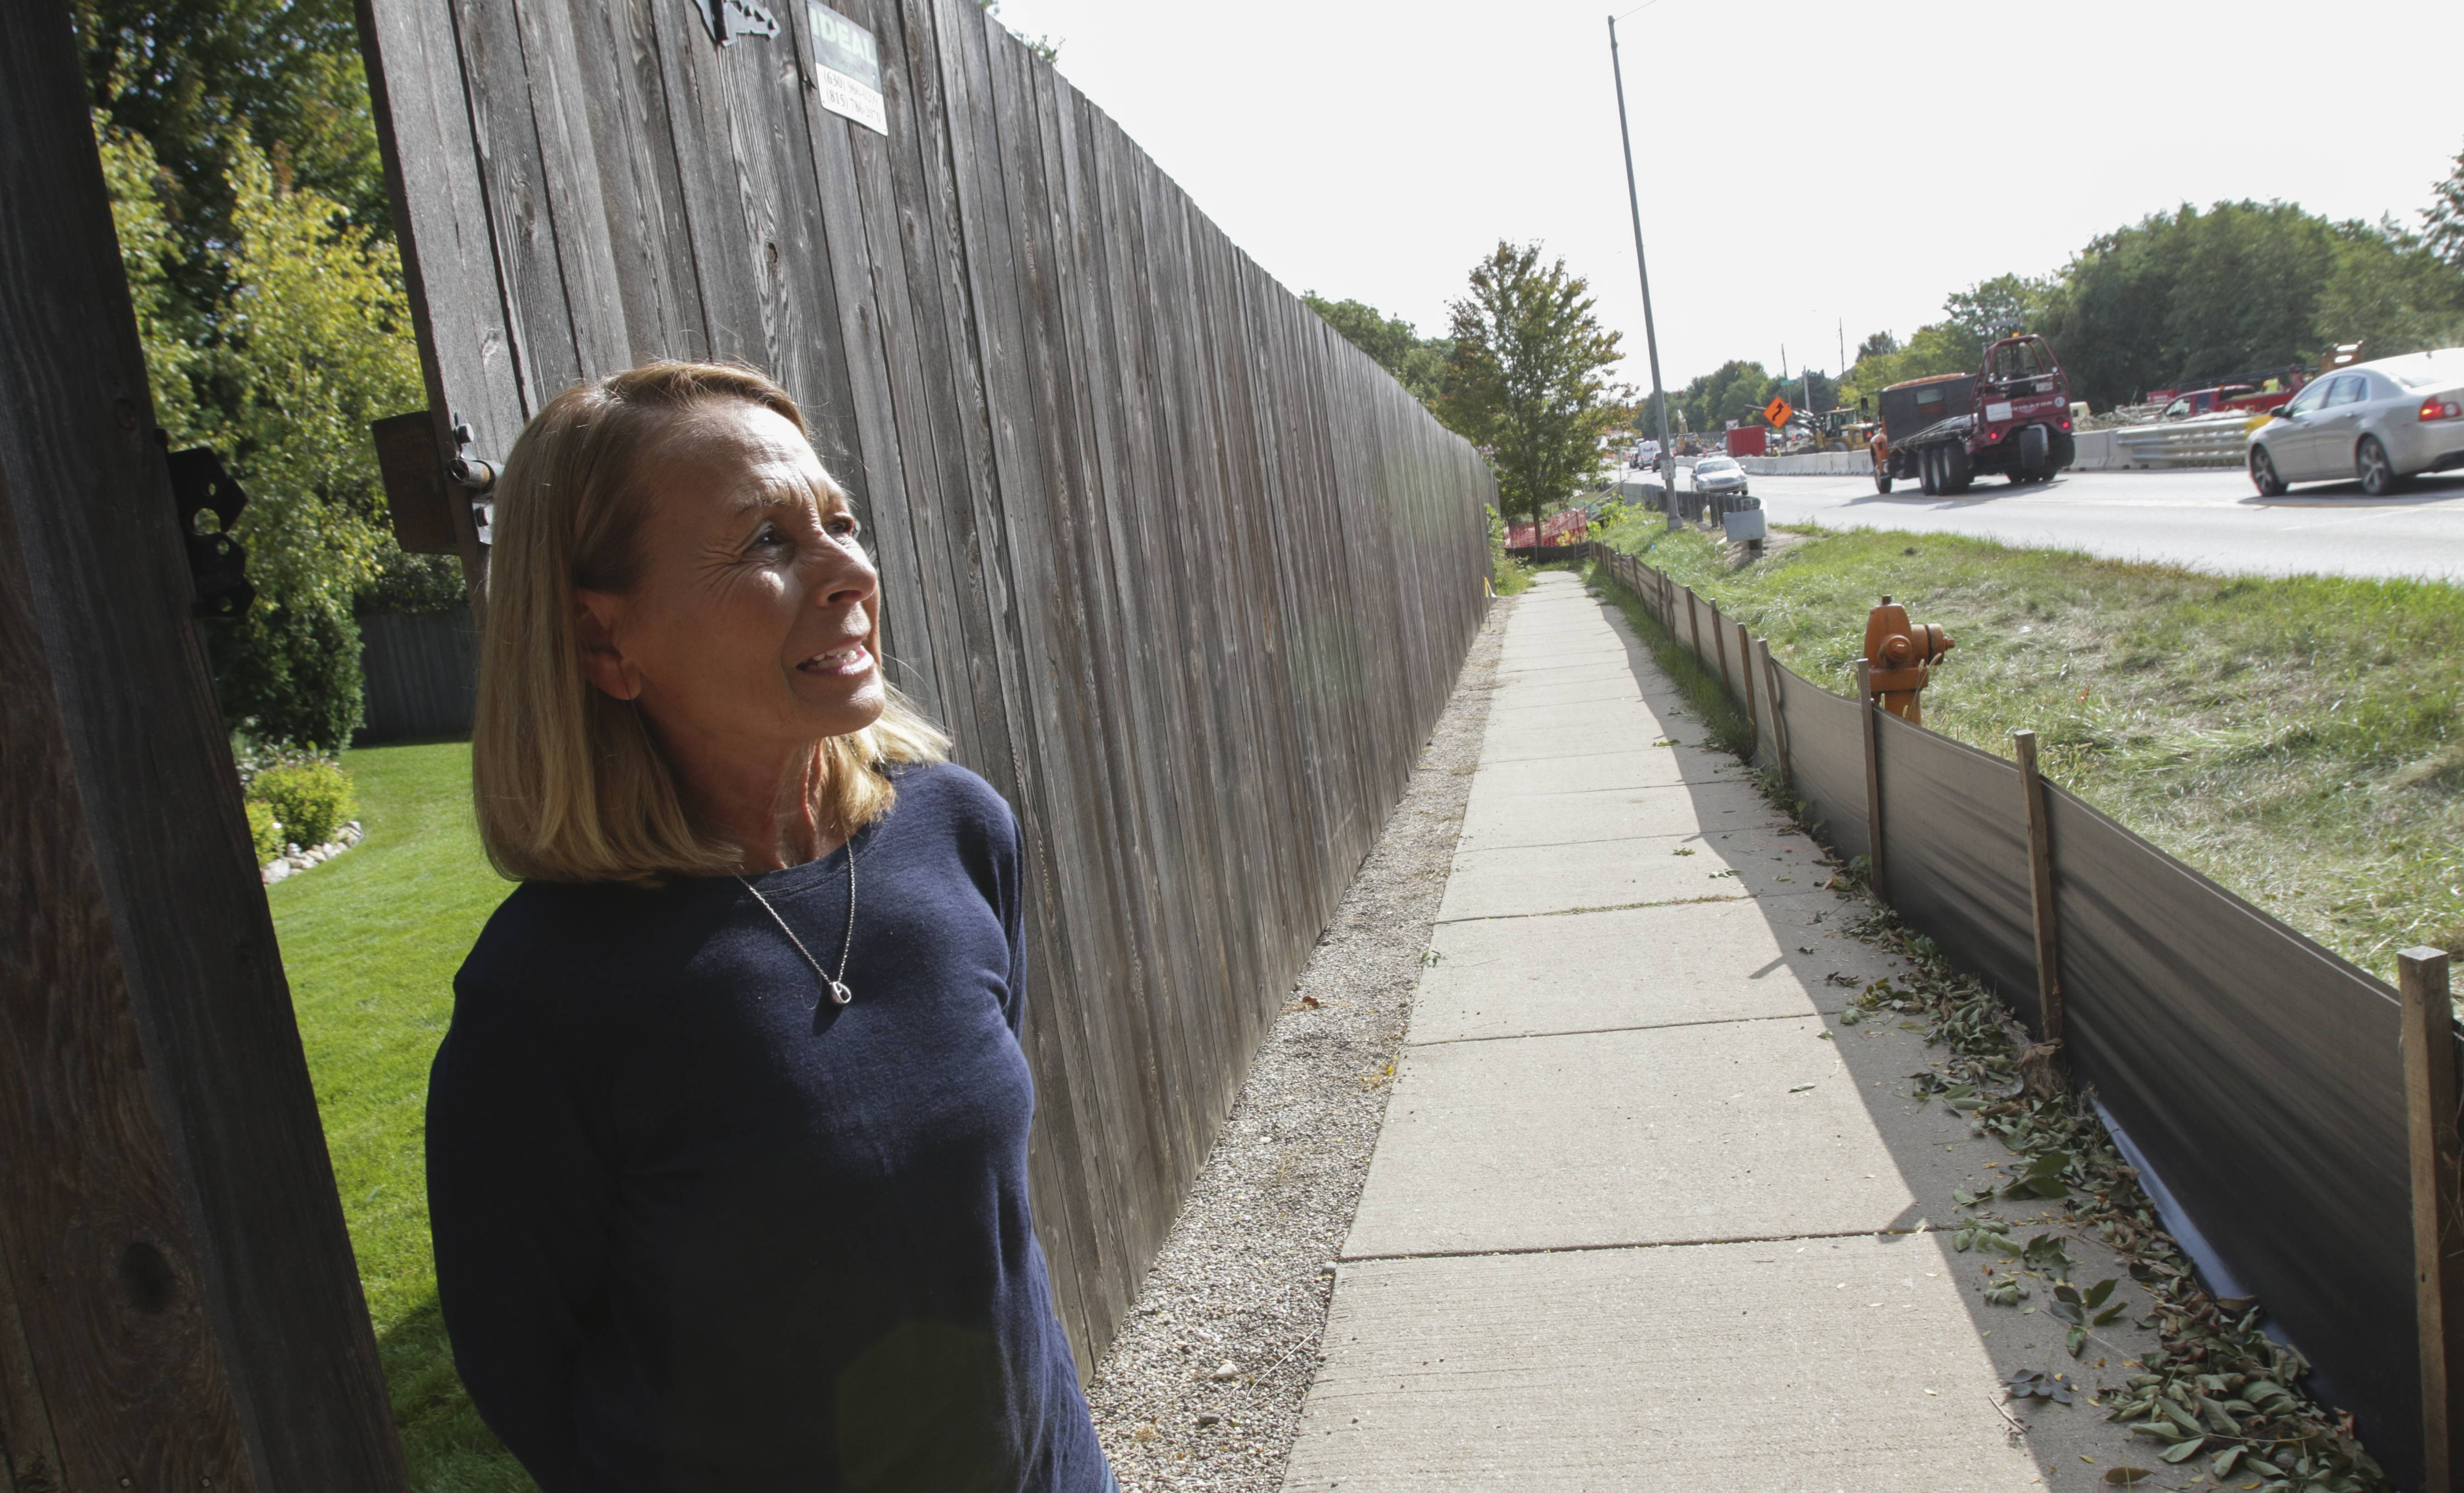 Naperville resident promises persistence in push for sound wall